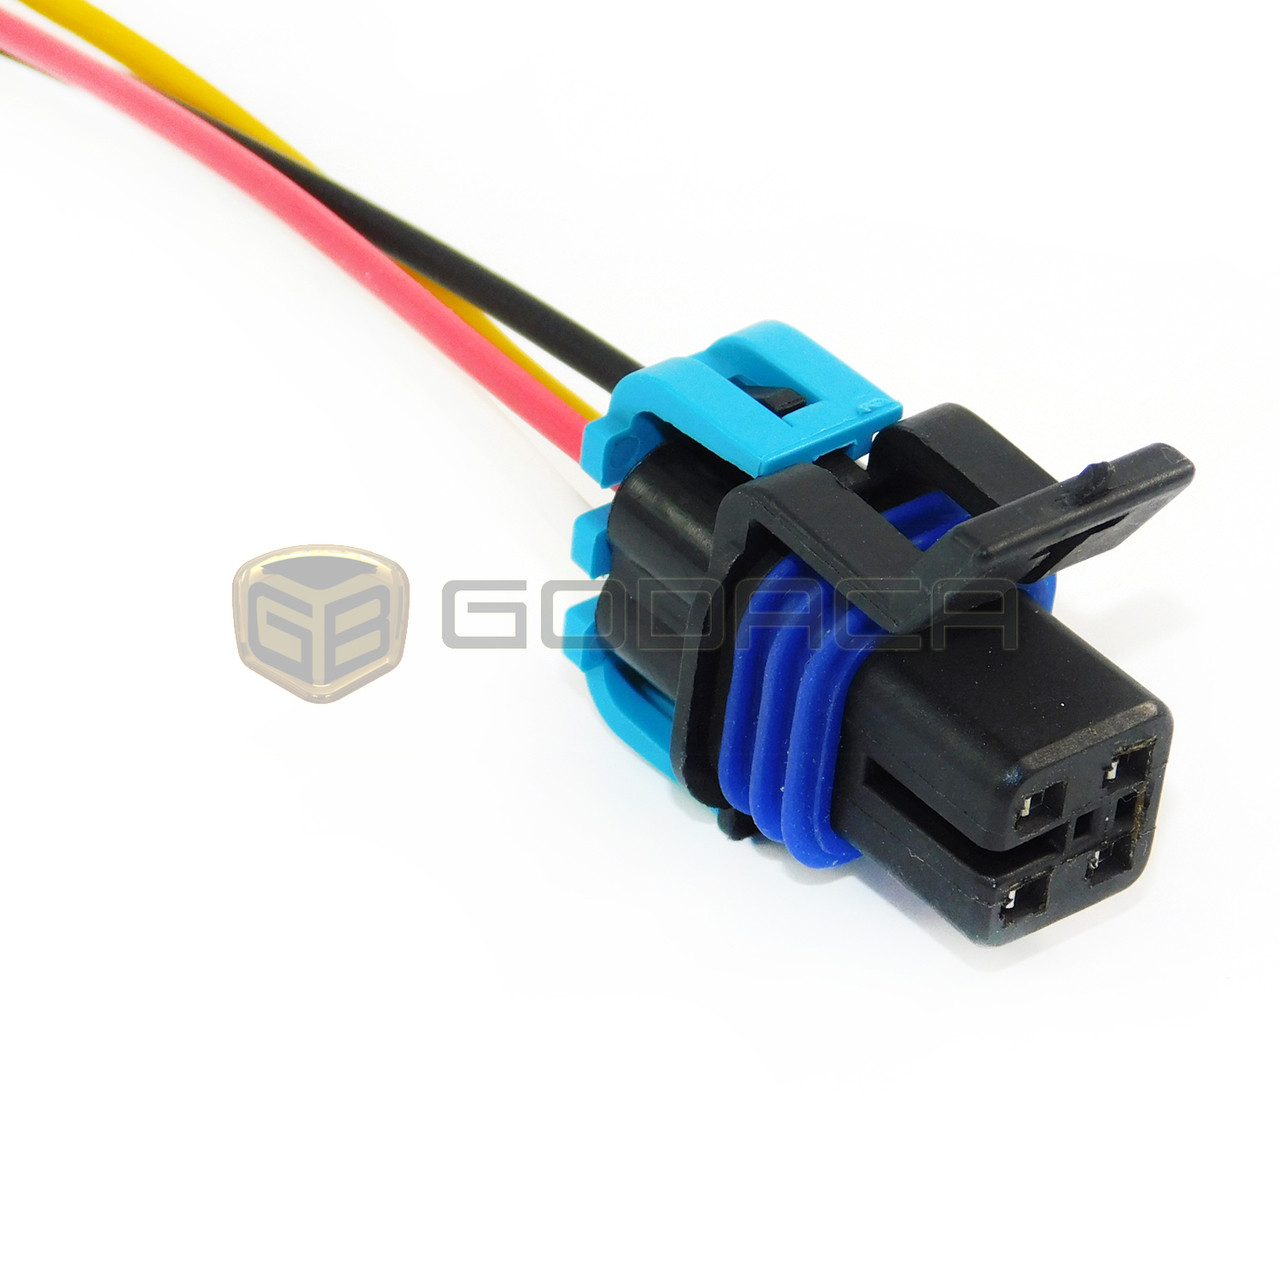 small resolution of connector for fuel pump 4 way female wiring harness gm chevrolet oxygen 12160482 godaca llc